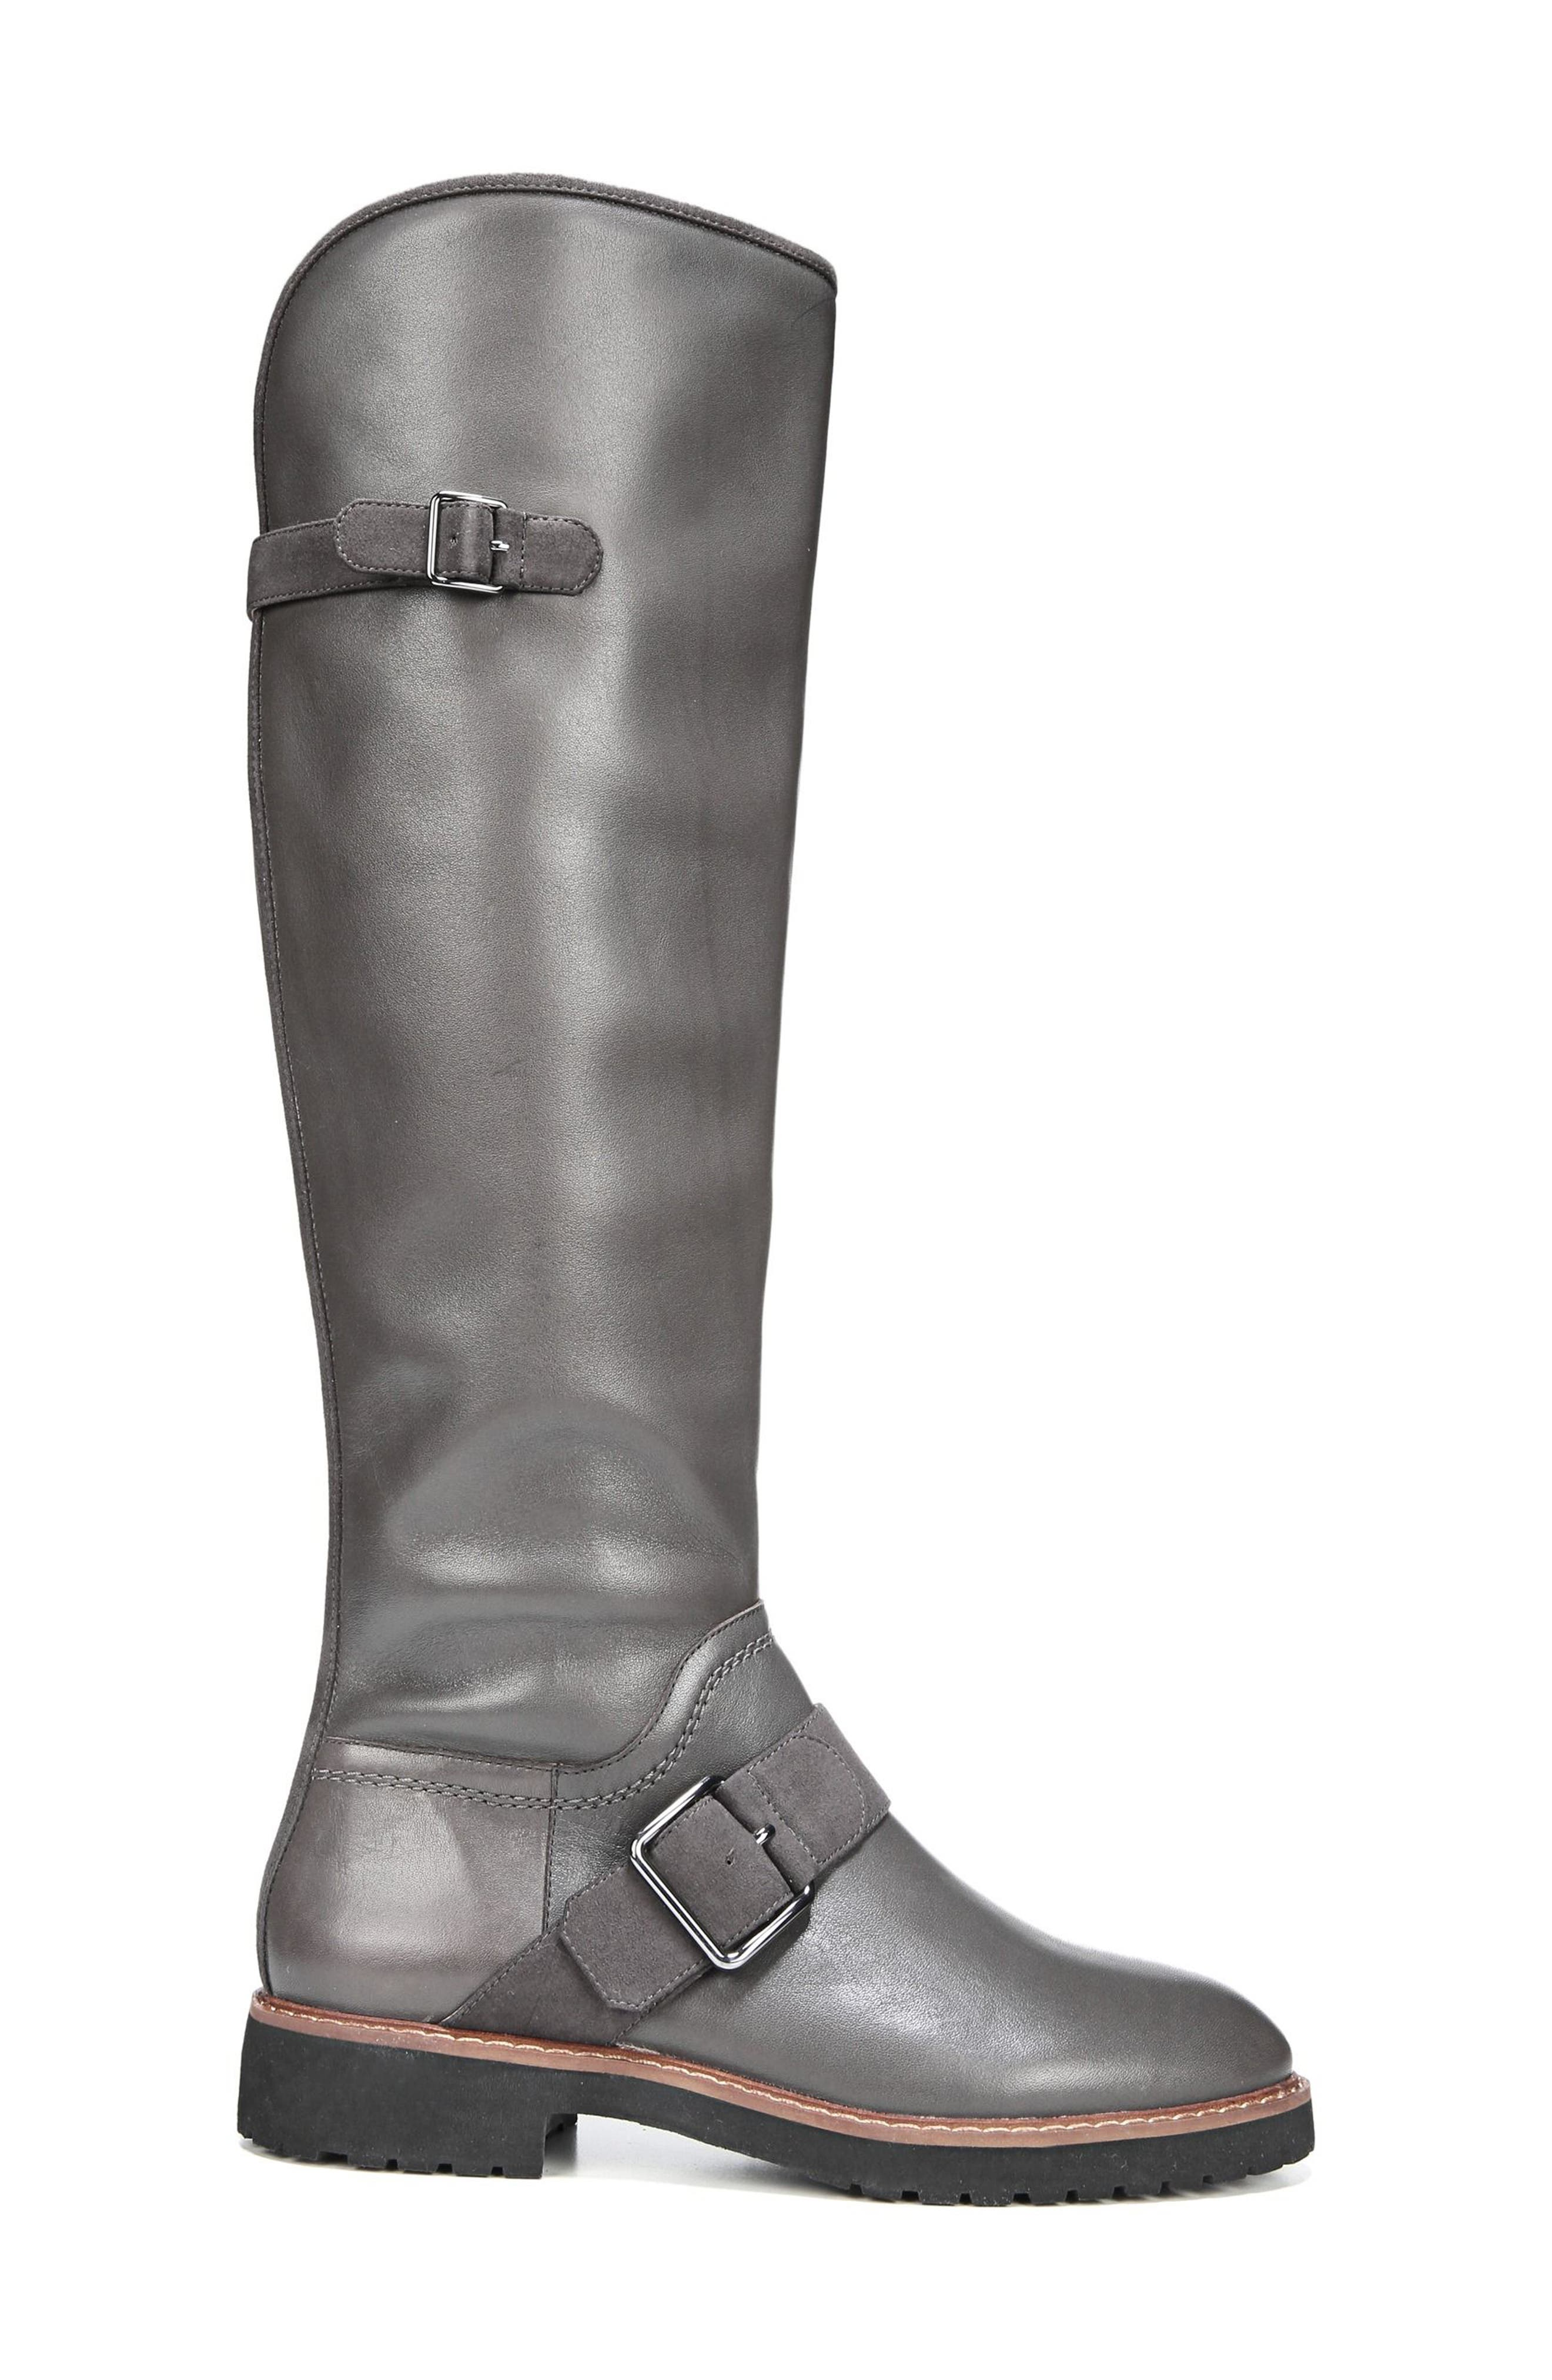 Cutler Riding Boot,                             Alternate thumbnail 3, color,                             Peat Leather